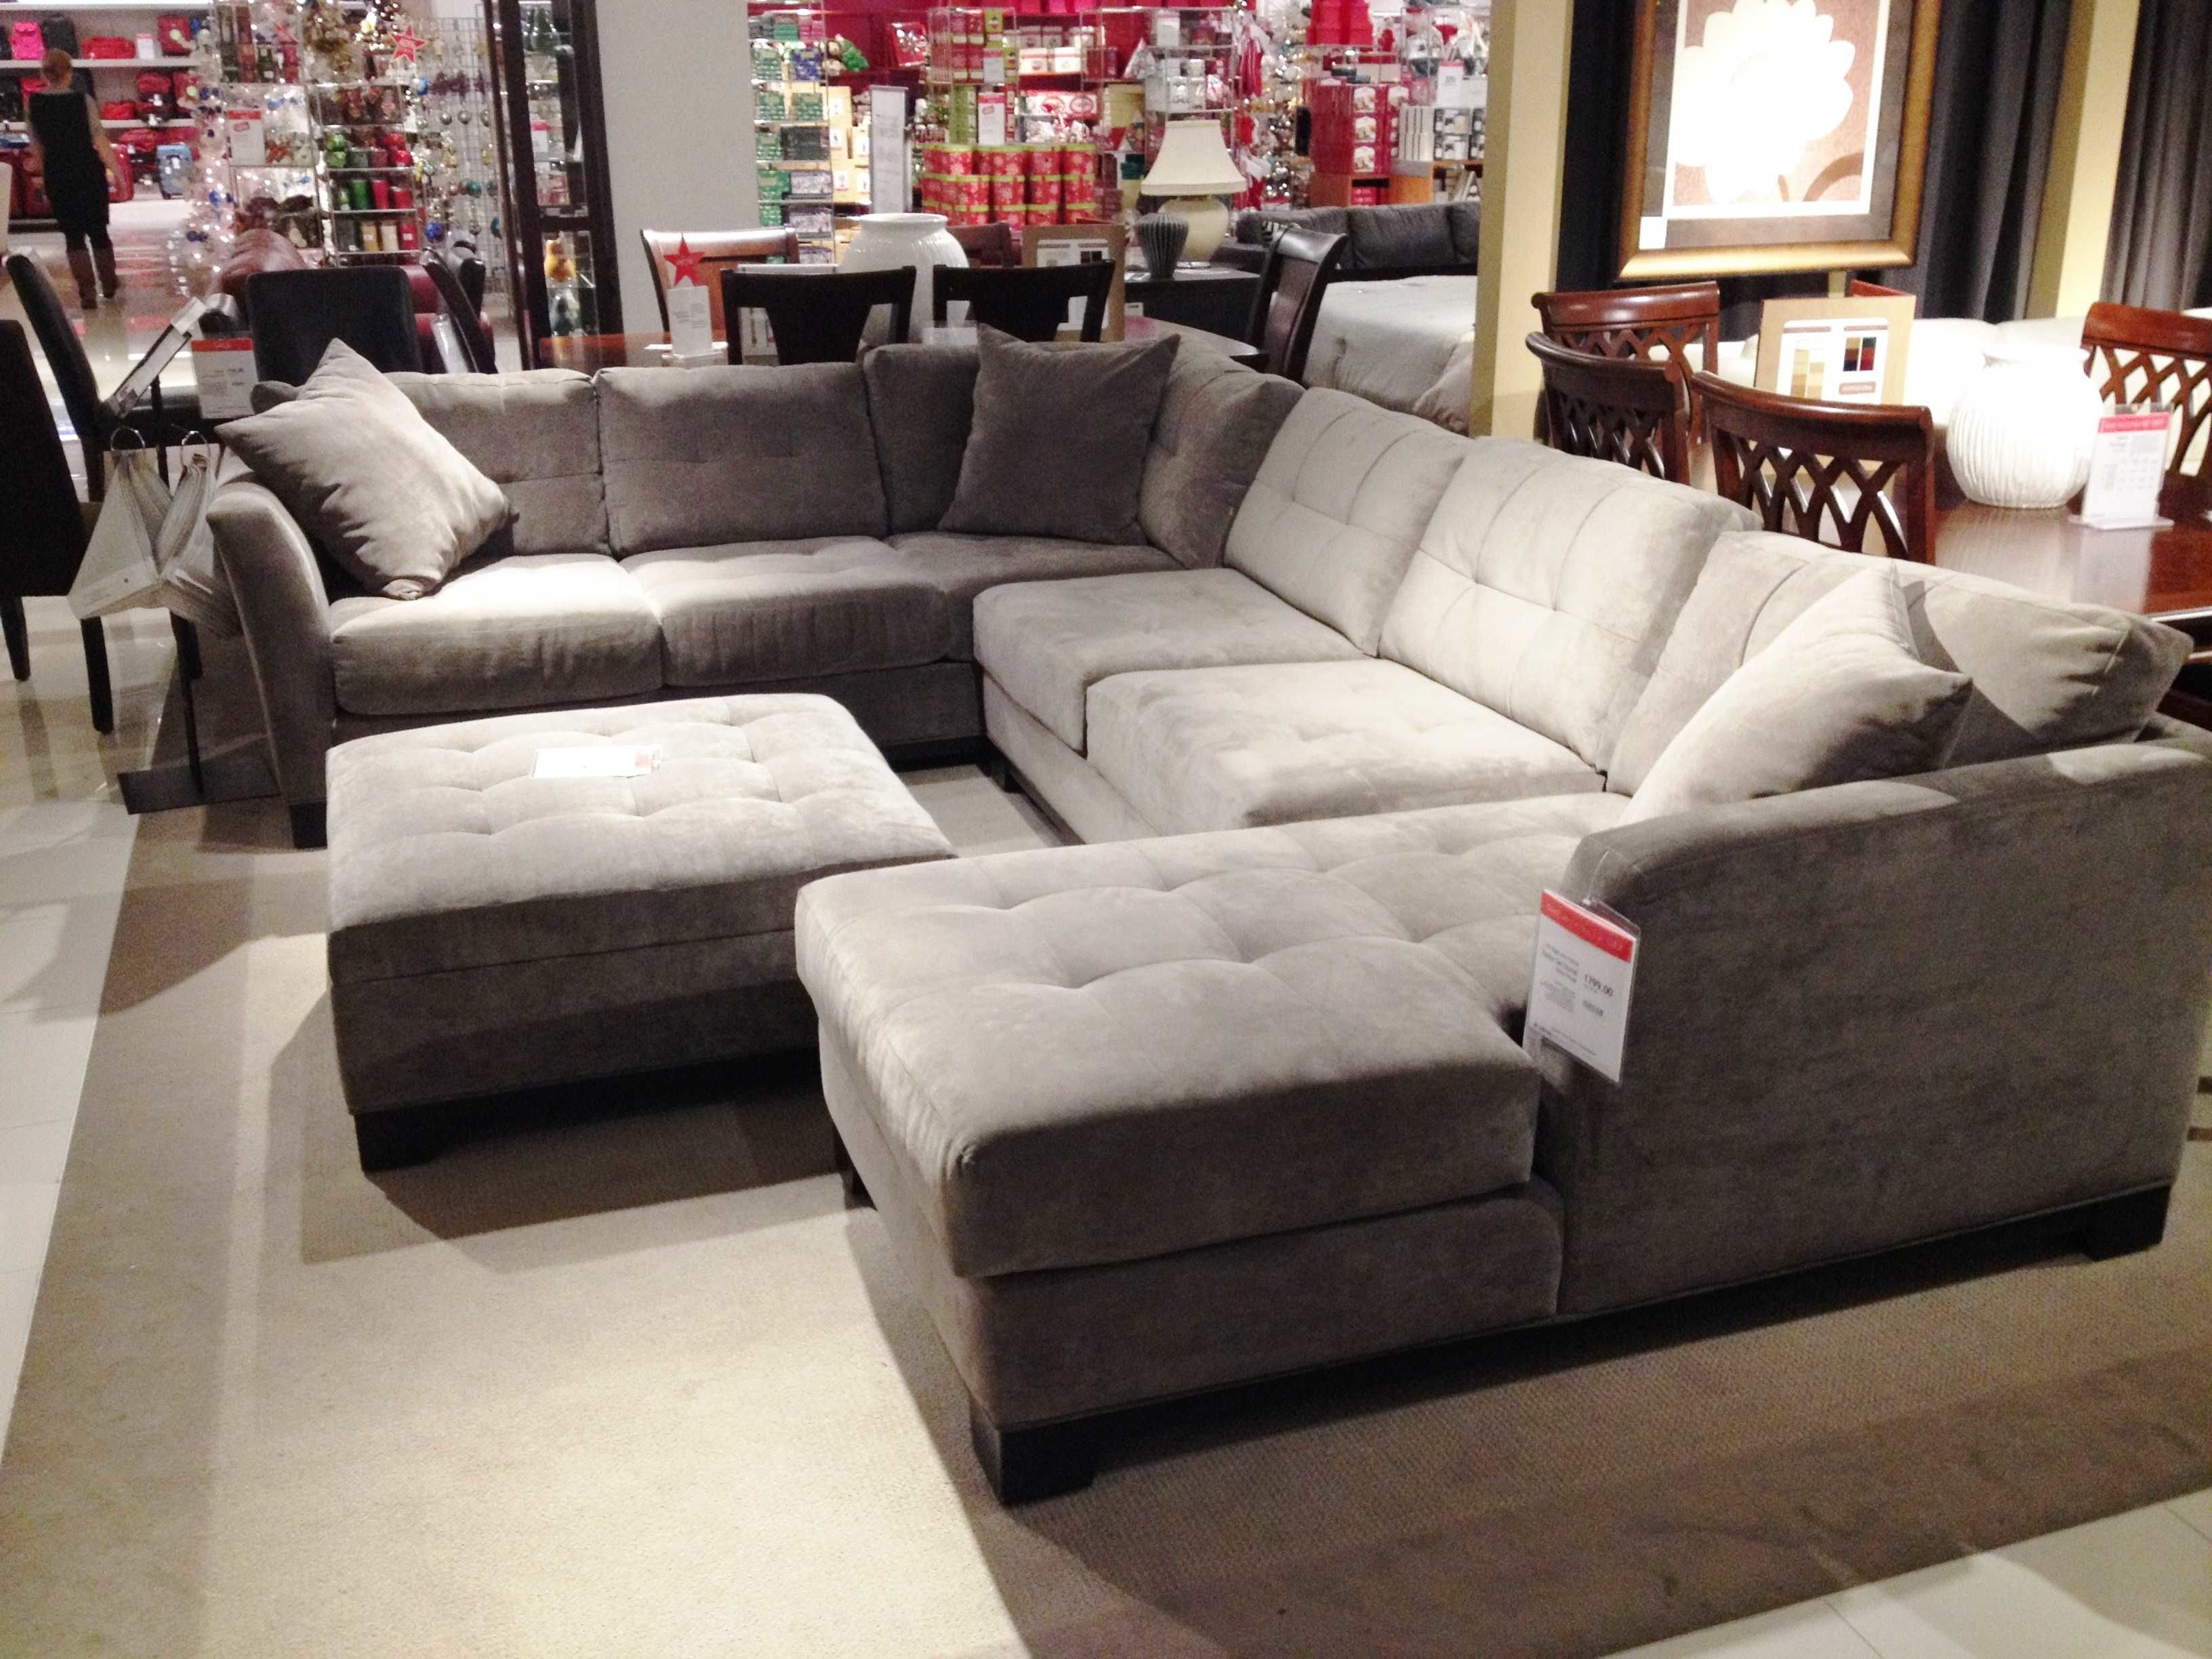 beautiful leather sofa macys collection-New Leather sofa Macys Gallery